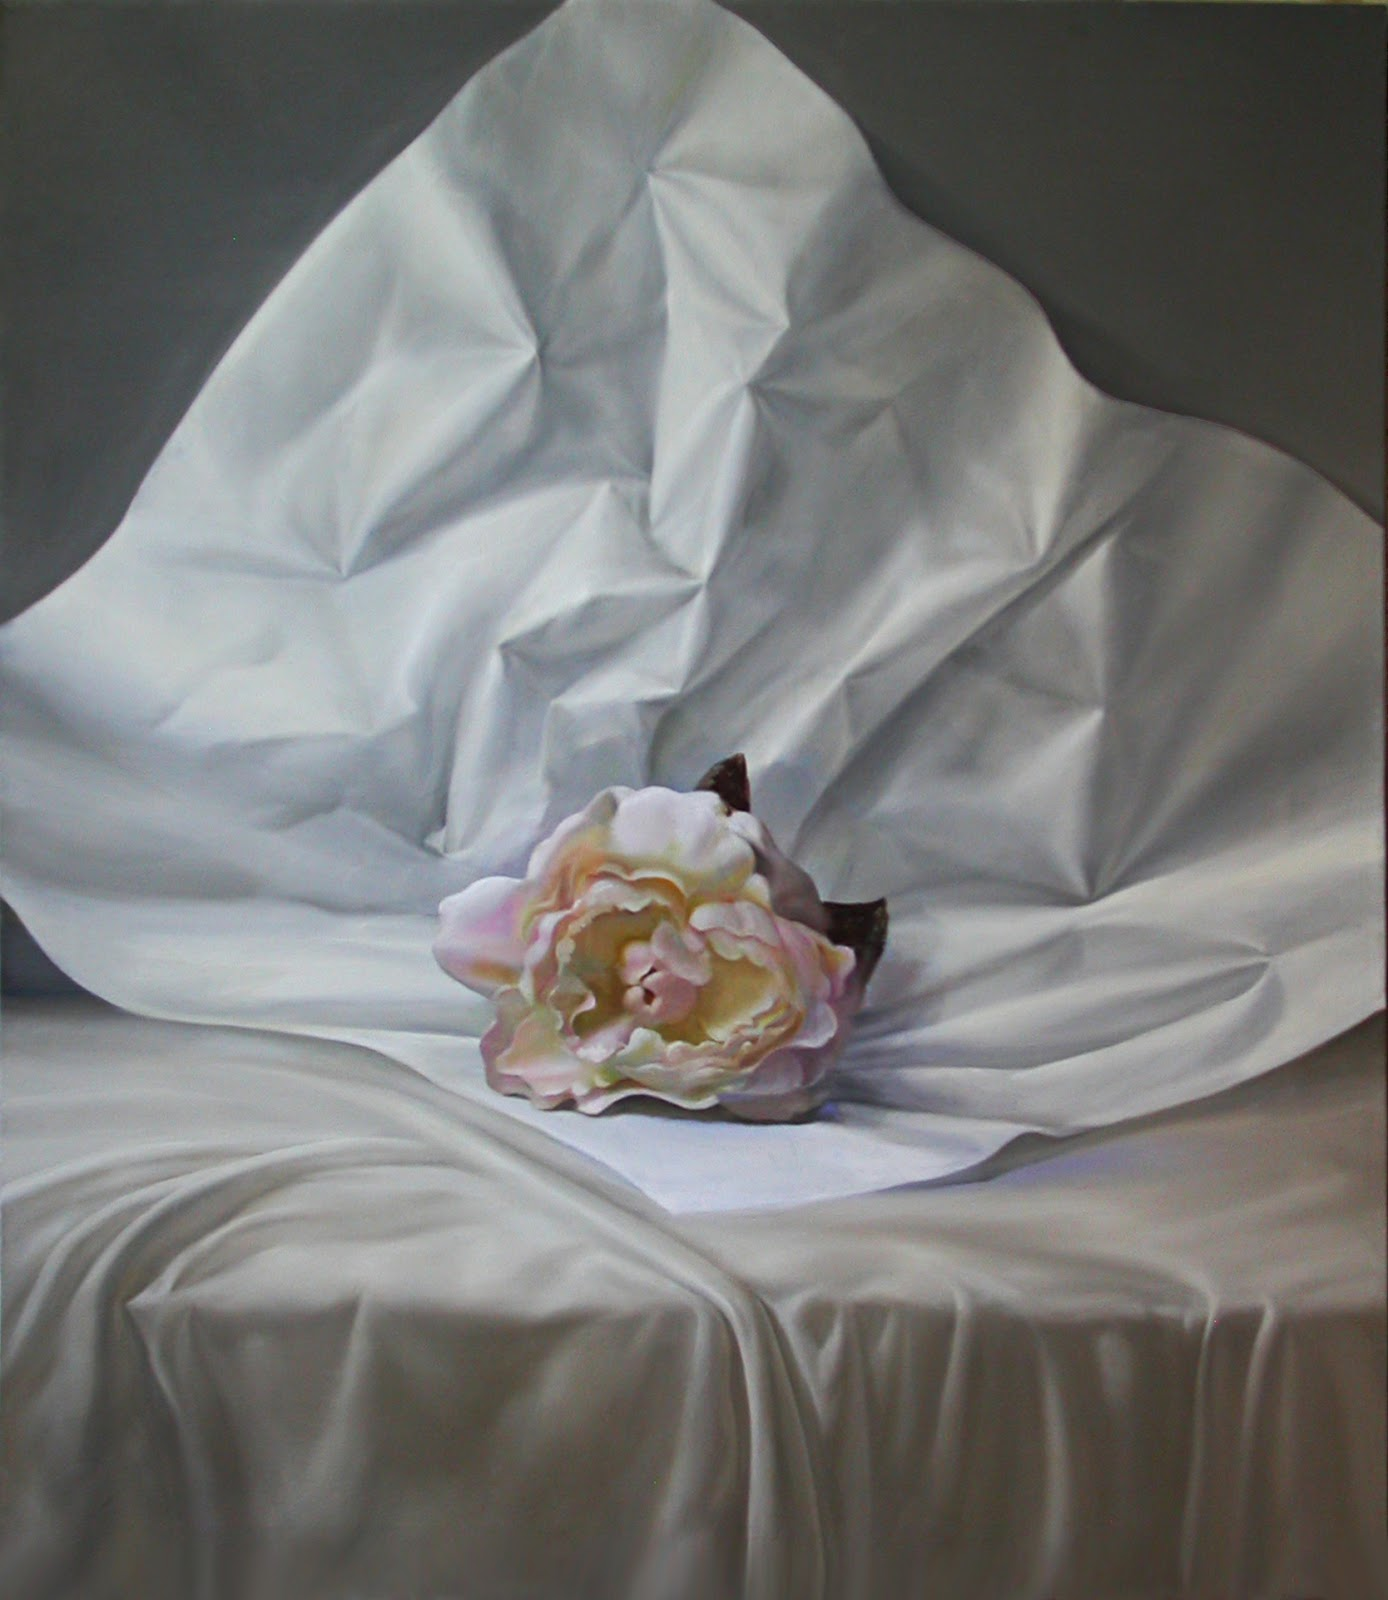 Oil Paintings By Elaine Kurie